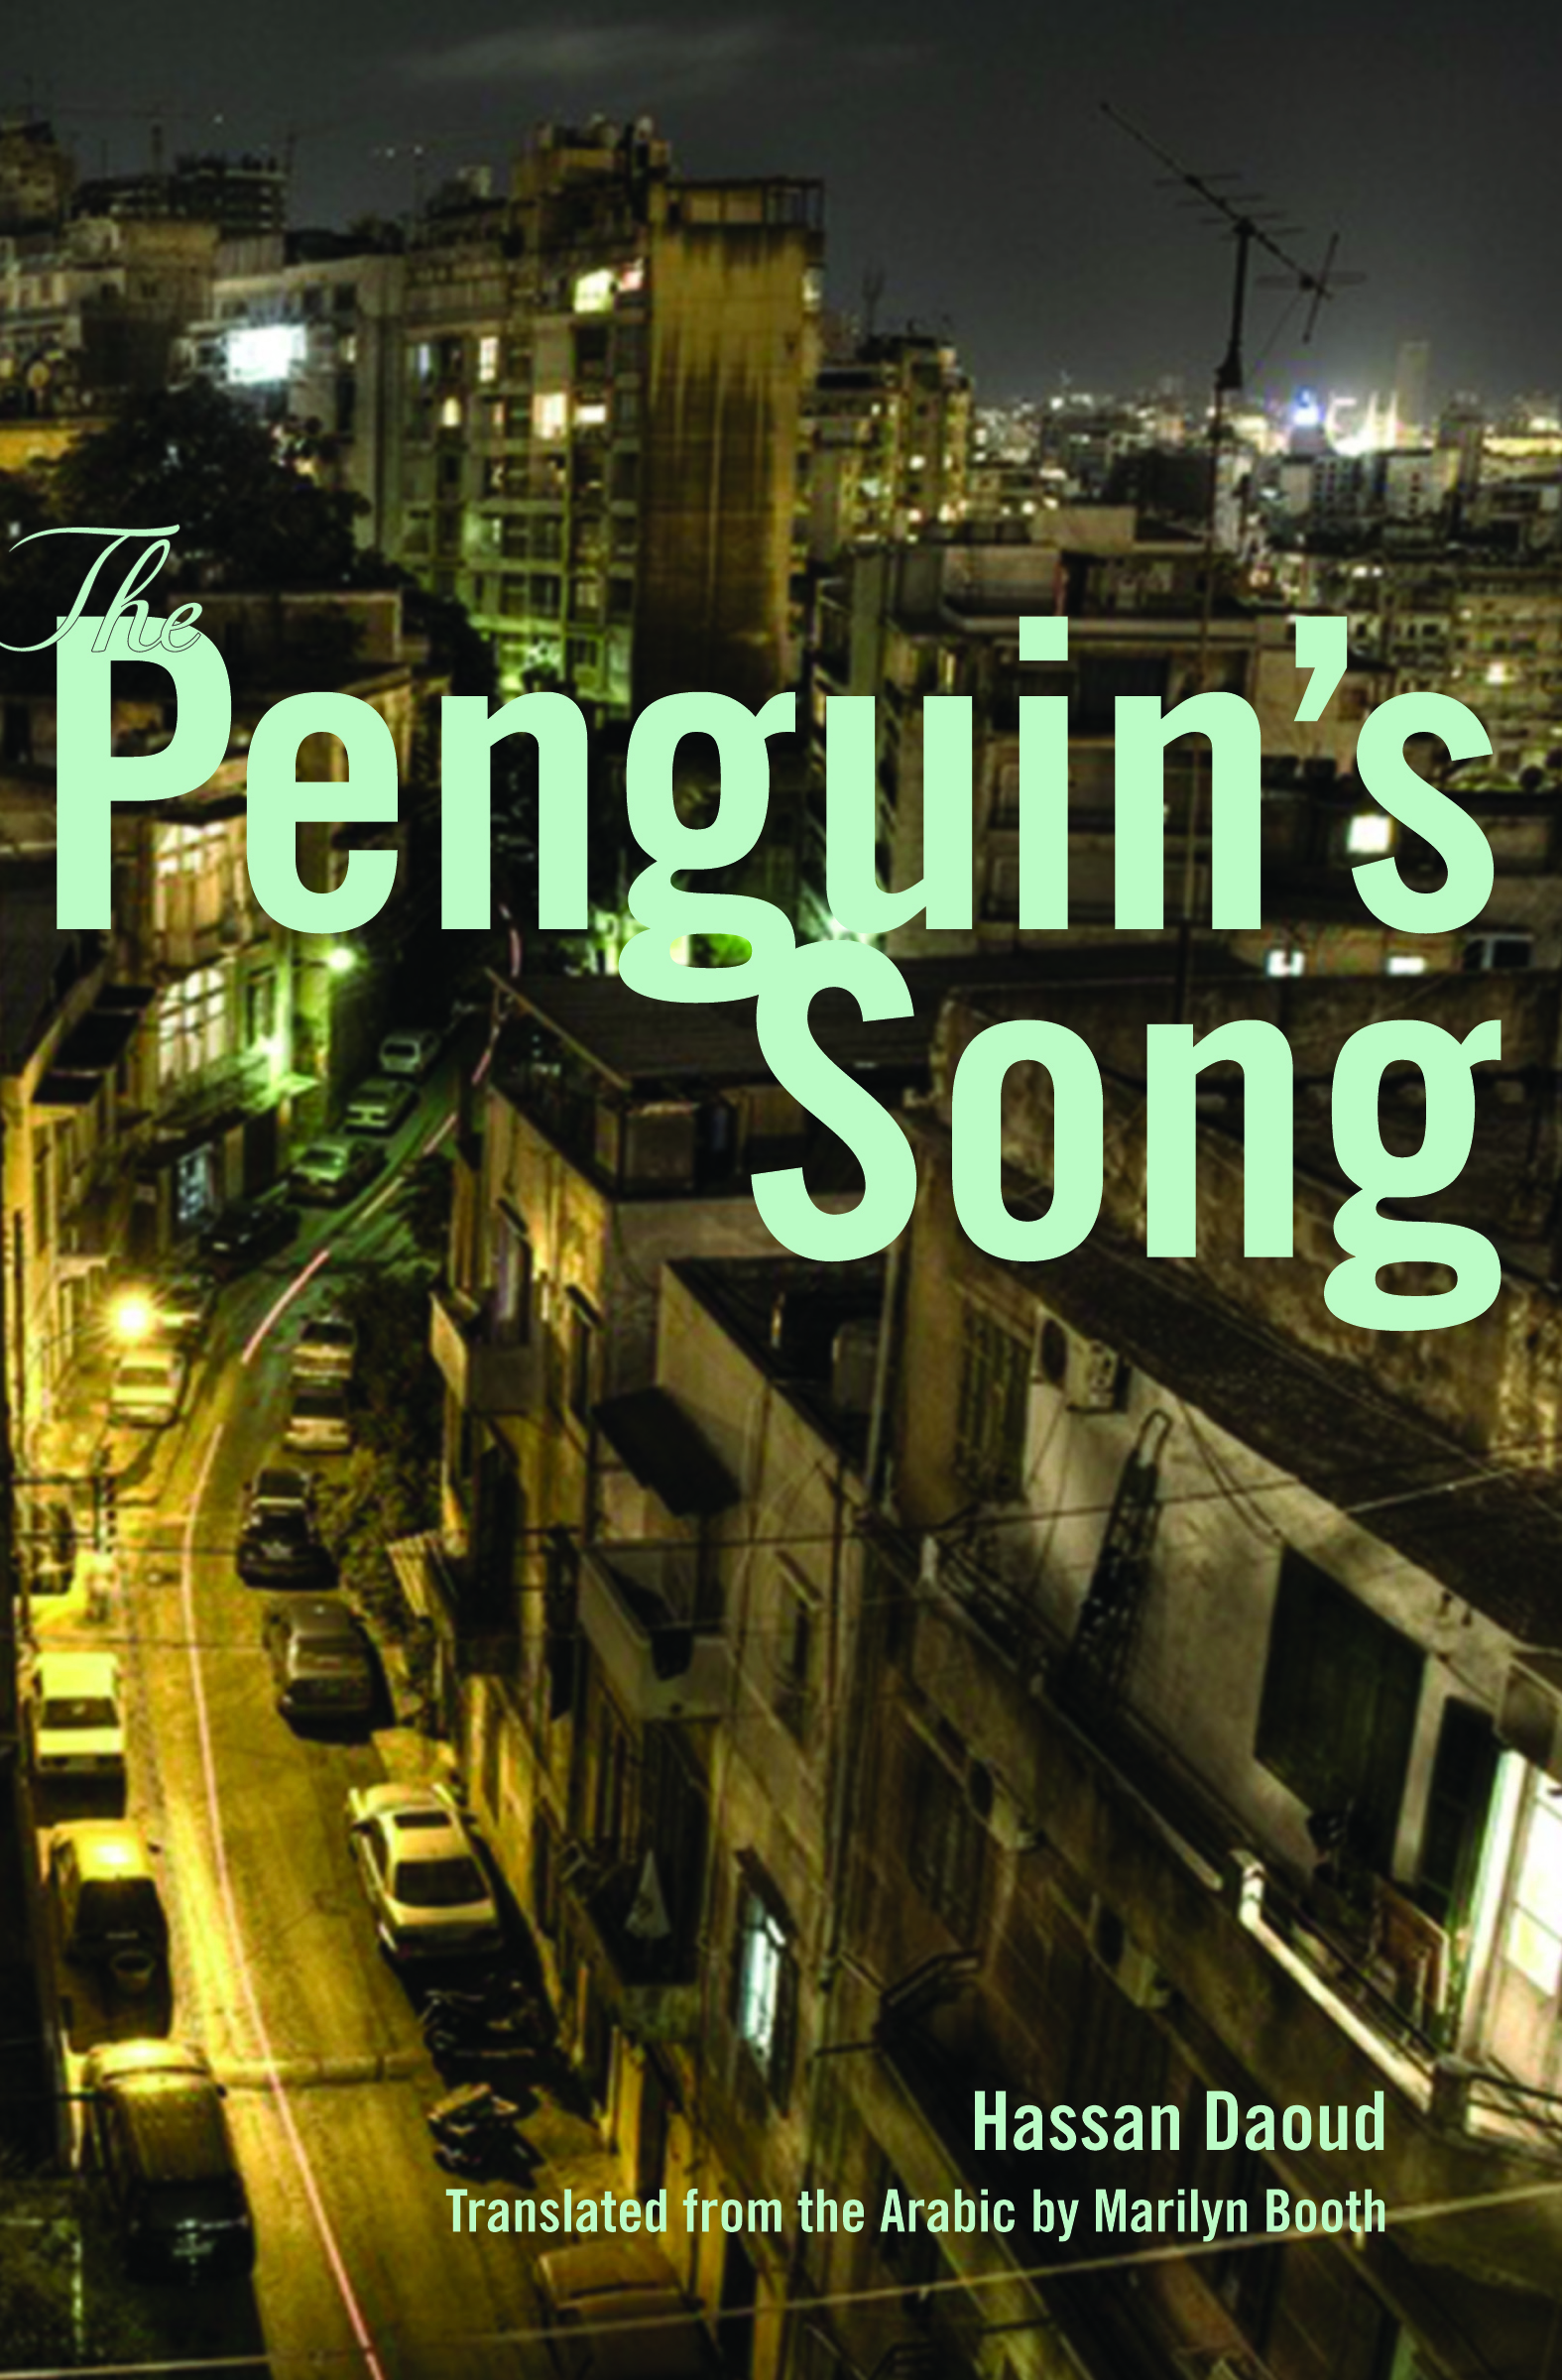 The Penguin's Song_book cover